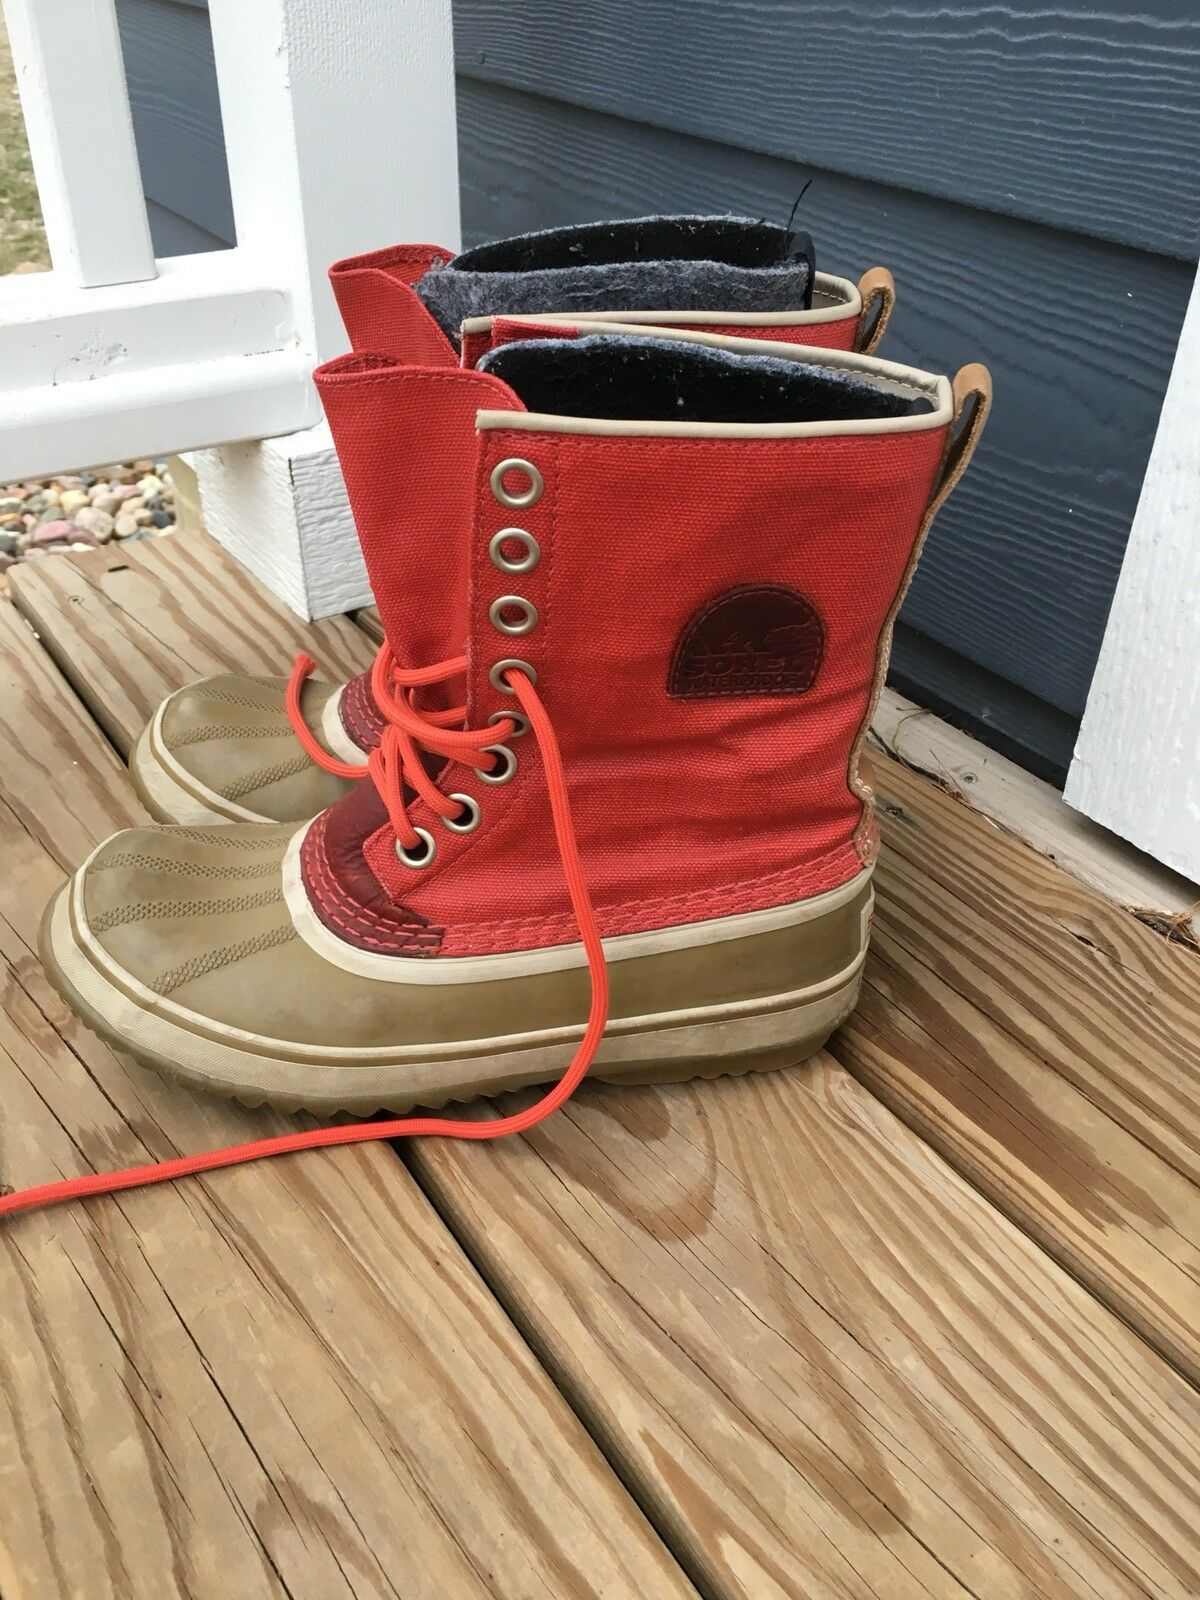 sorel womens 1964 premium cvs snow boot candy apple red 7 us